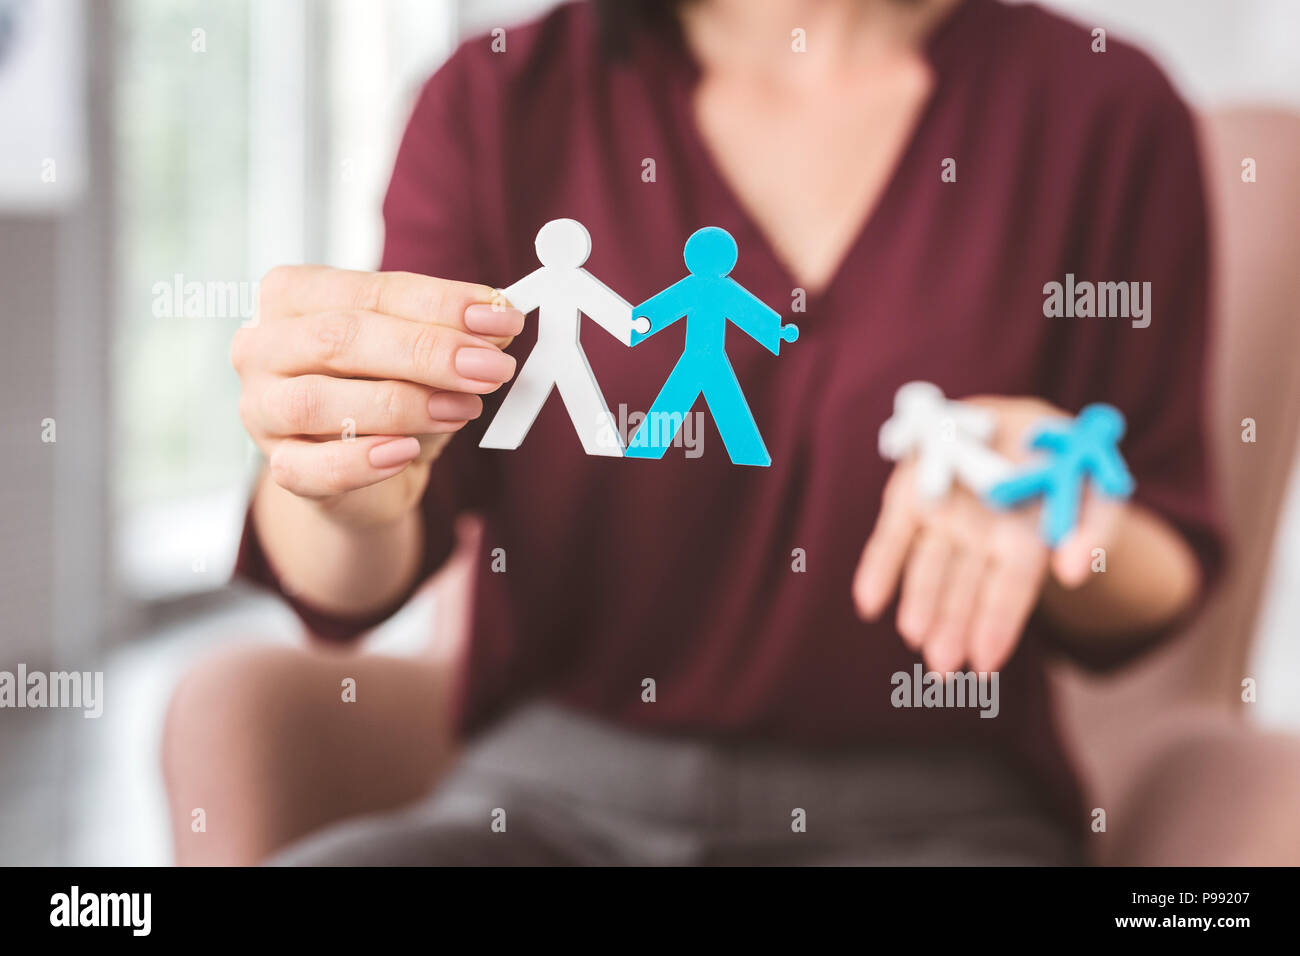 Two stickmen holding hands and giving an example of good relationships - Stock Image